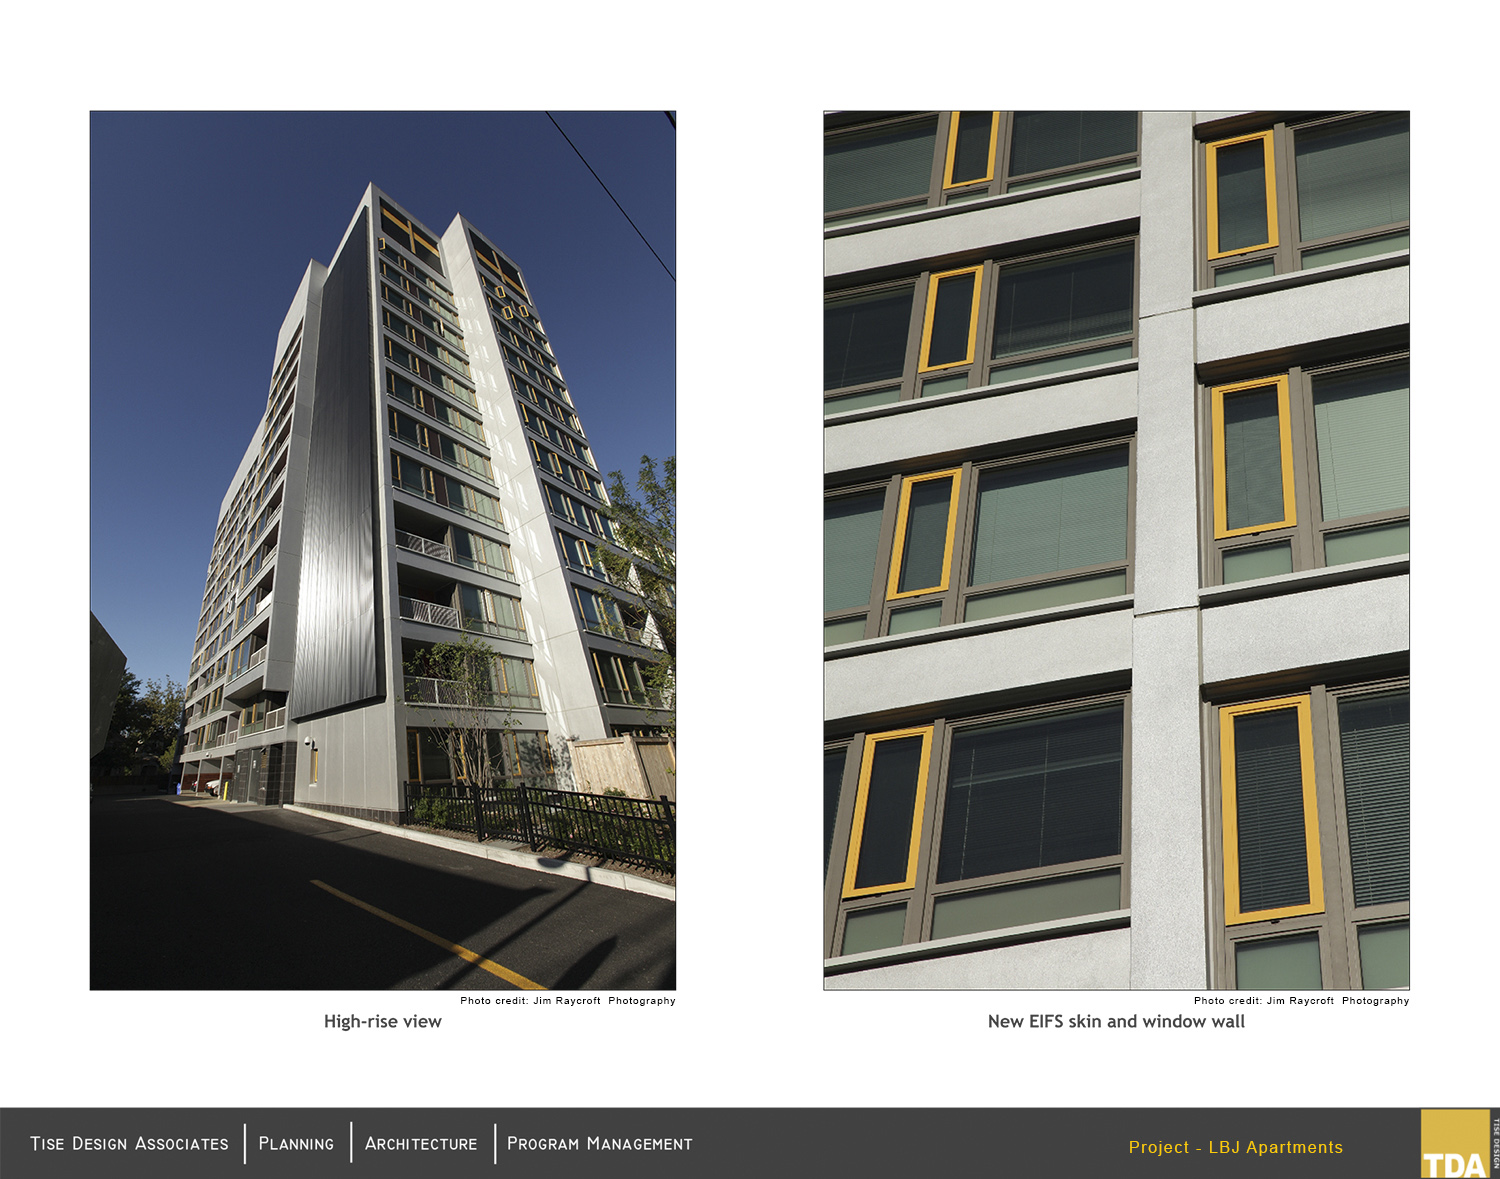 Exterior High-rise view and New EIFS skin and window wall (after renovations) Jim Raycroft Photography